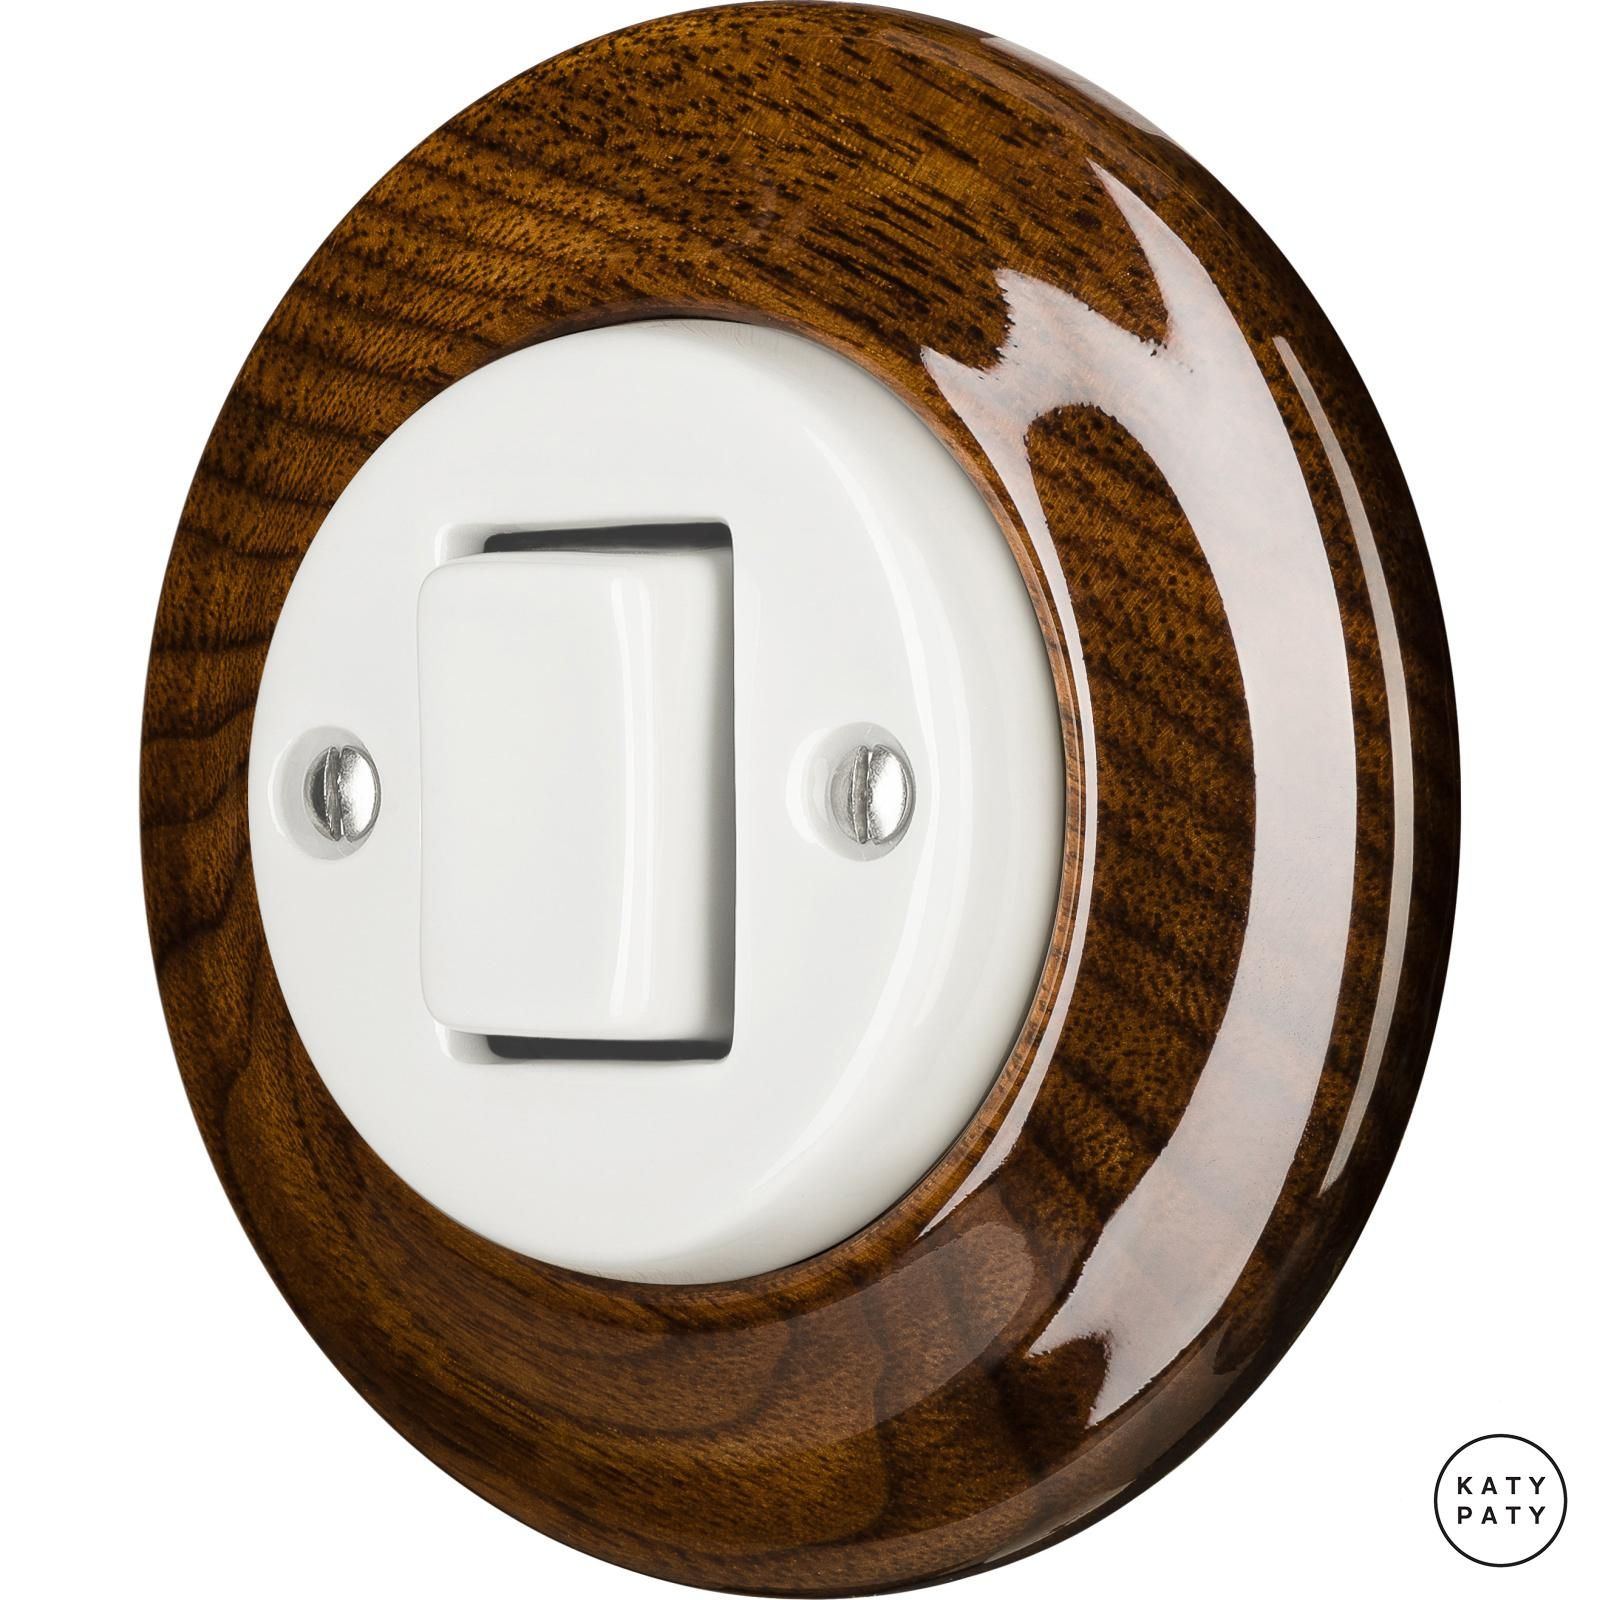 Porcelain switches - a single key - FAT ()  - NUCLEUS | Katy Paty